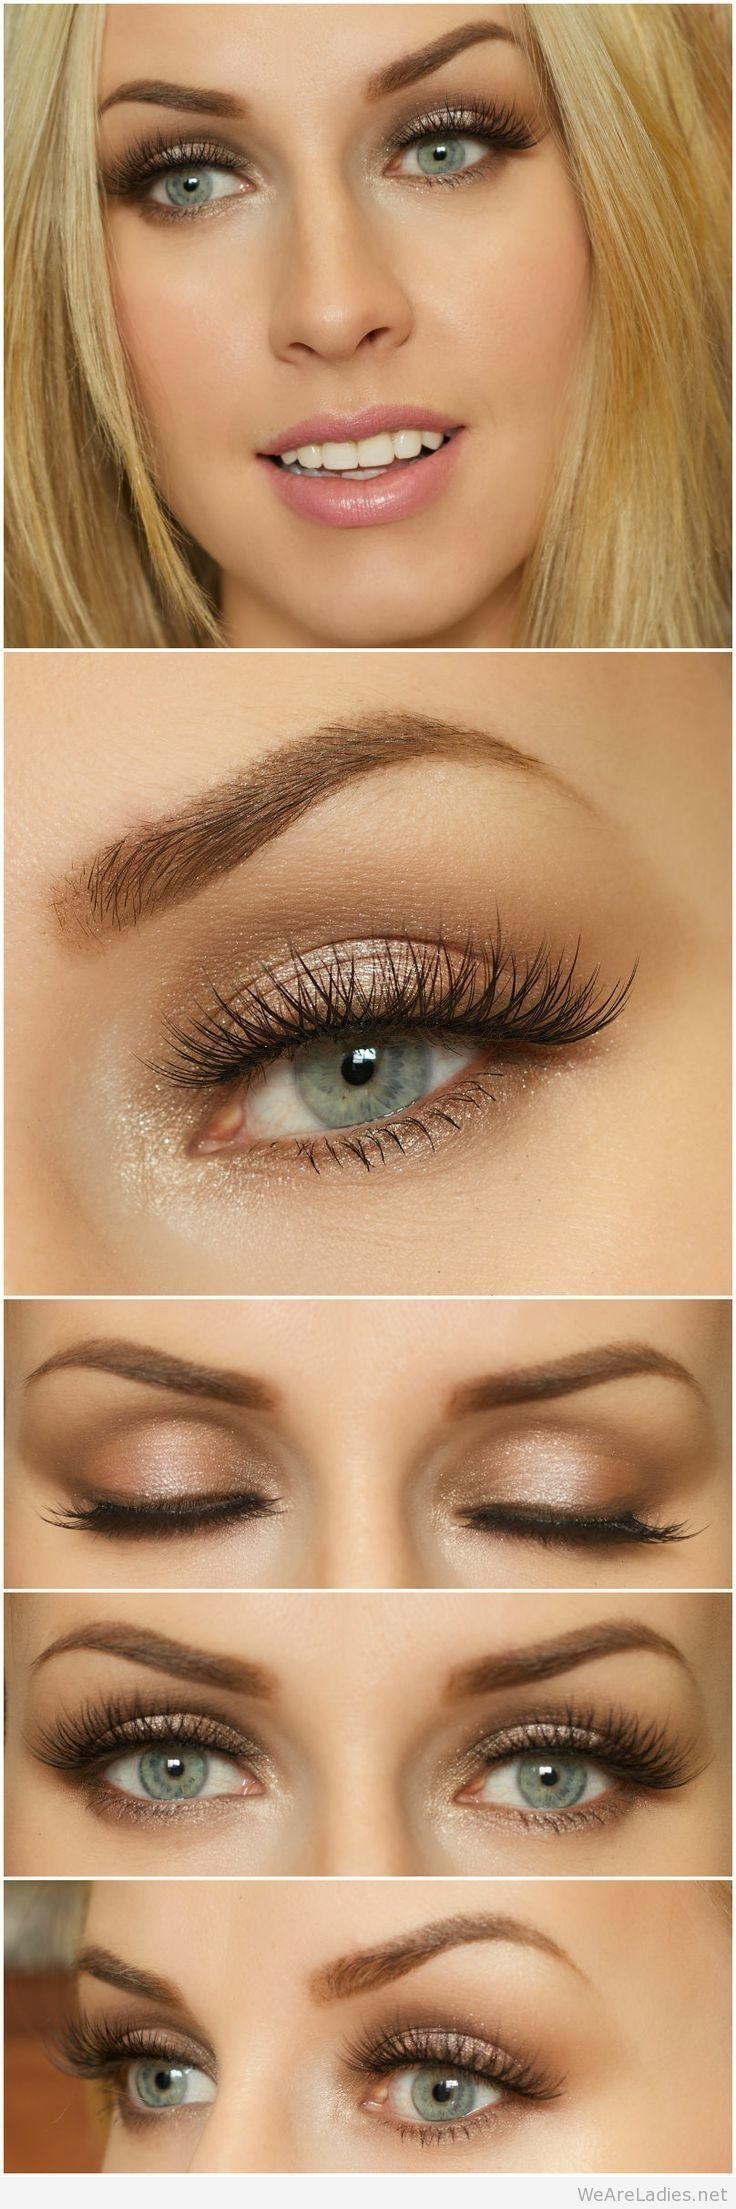 Brown Eye Makeup For Blue Eyes And Blonde Hair   Wedding in Makeup Blue Eyes Blonde Hair